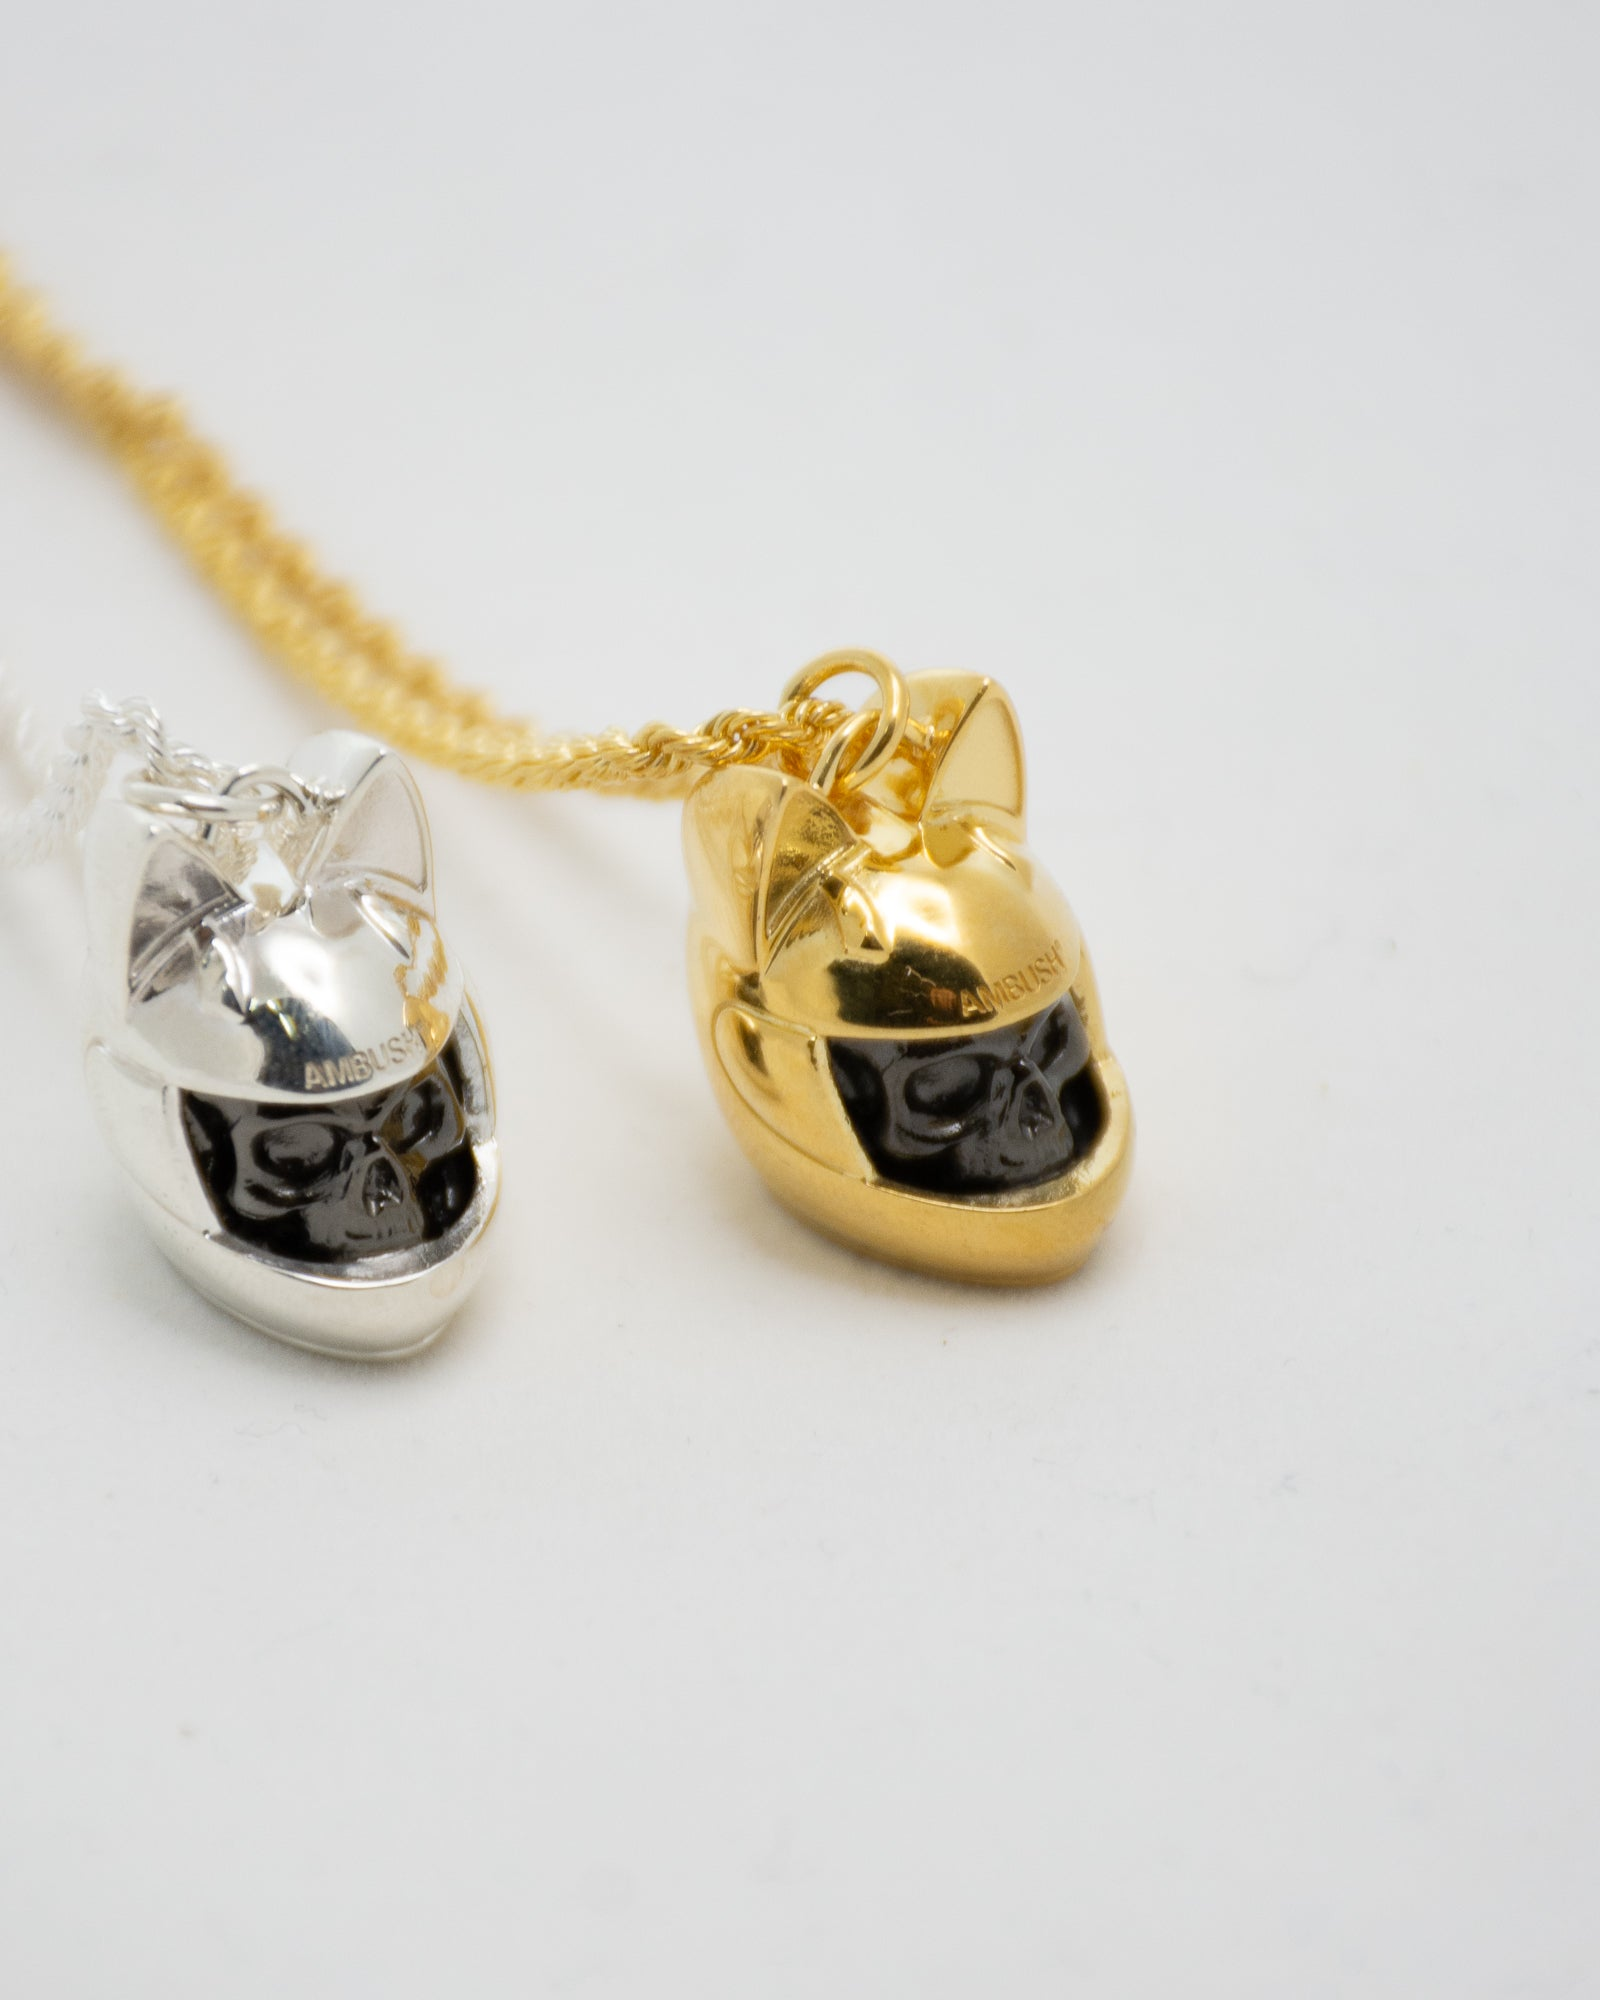 AMBUSH Cat Helmet Necklace